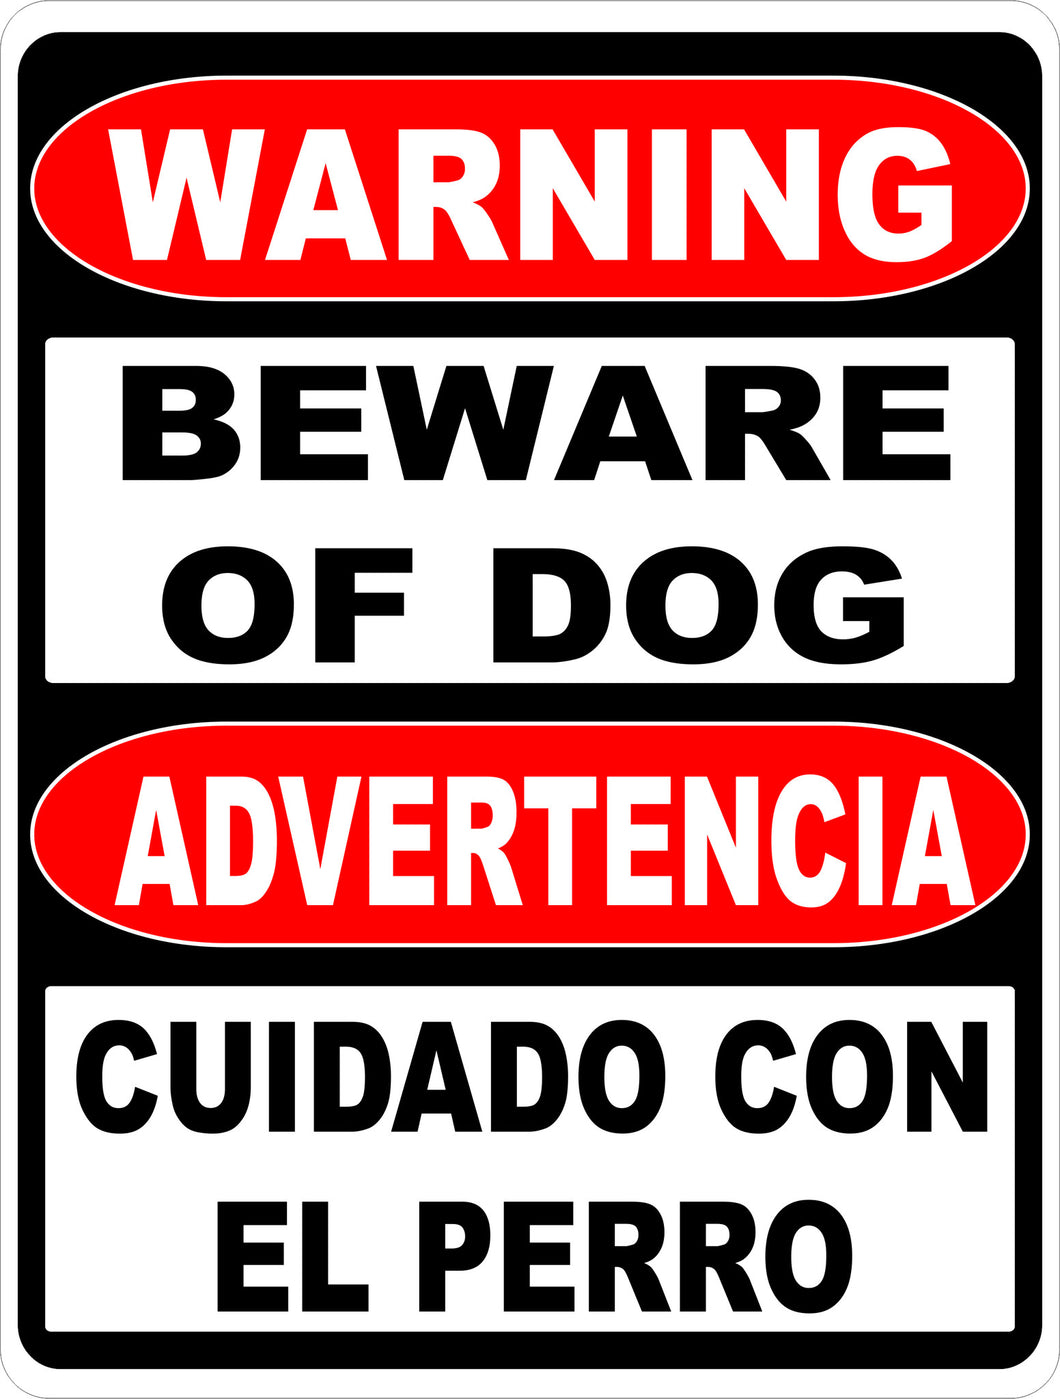 Bilingual Warning Beware of Dog Sign Advertencia Cuidado Con El Perro - Signs & Decals by SalaGraphics